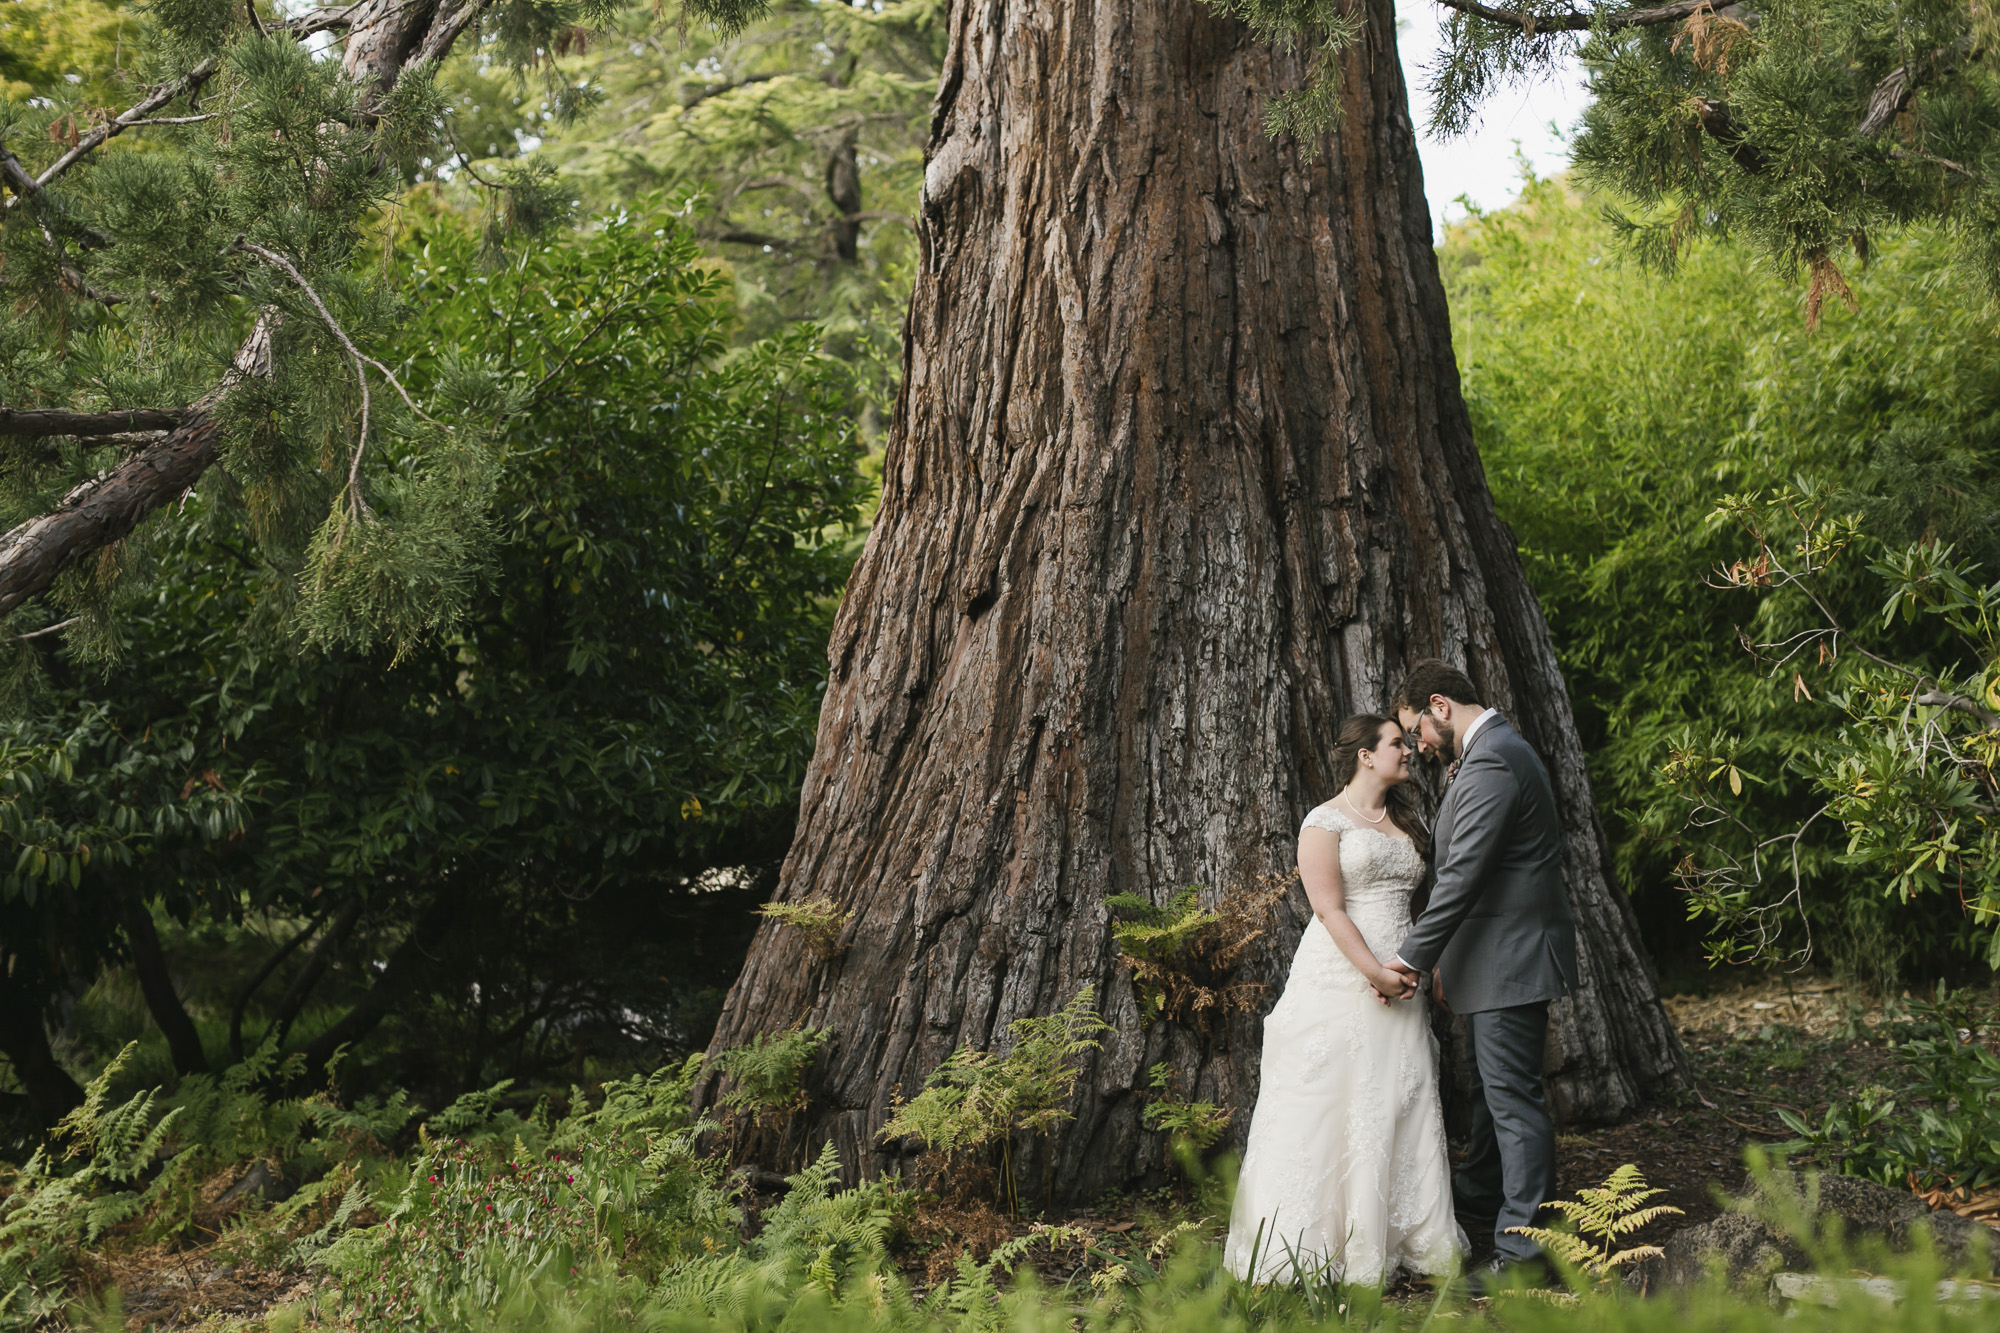 Wedding couple stand together under a Sequoia tree